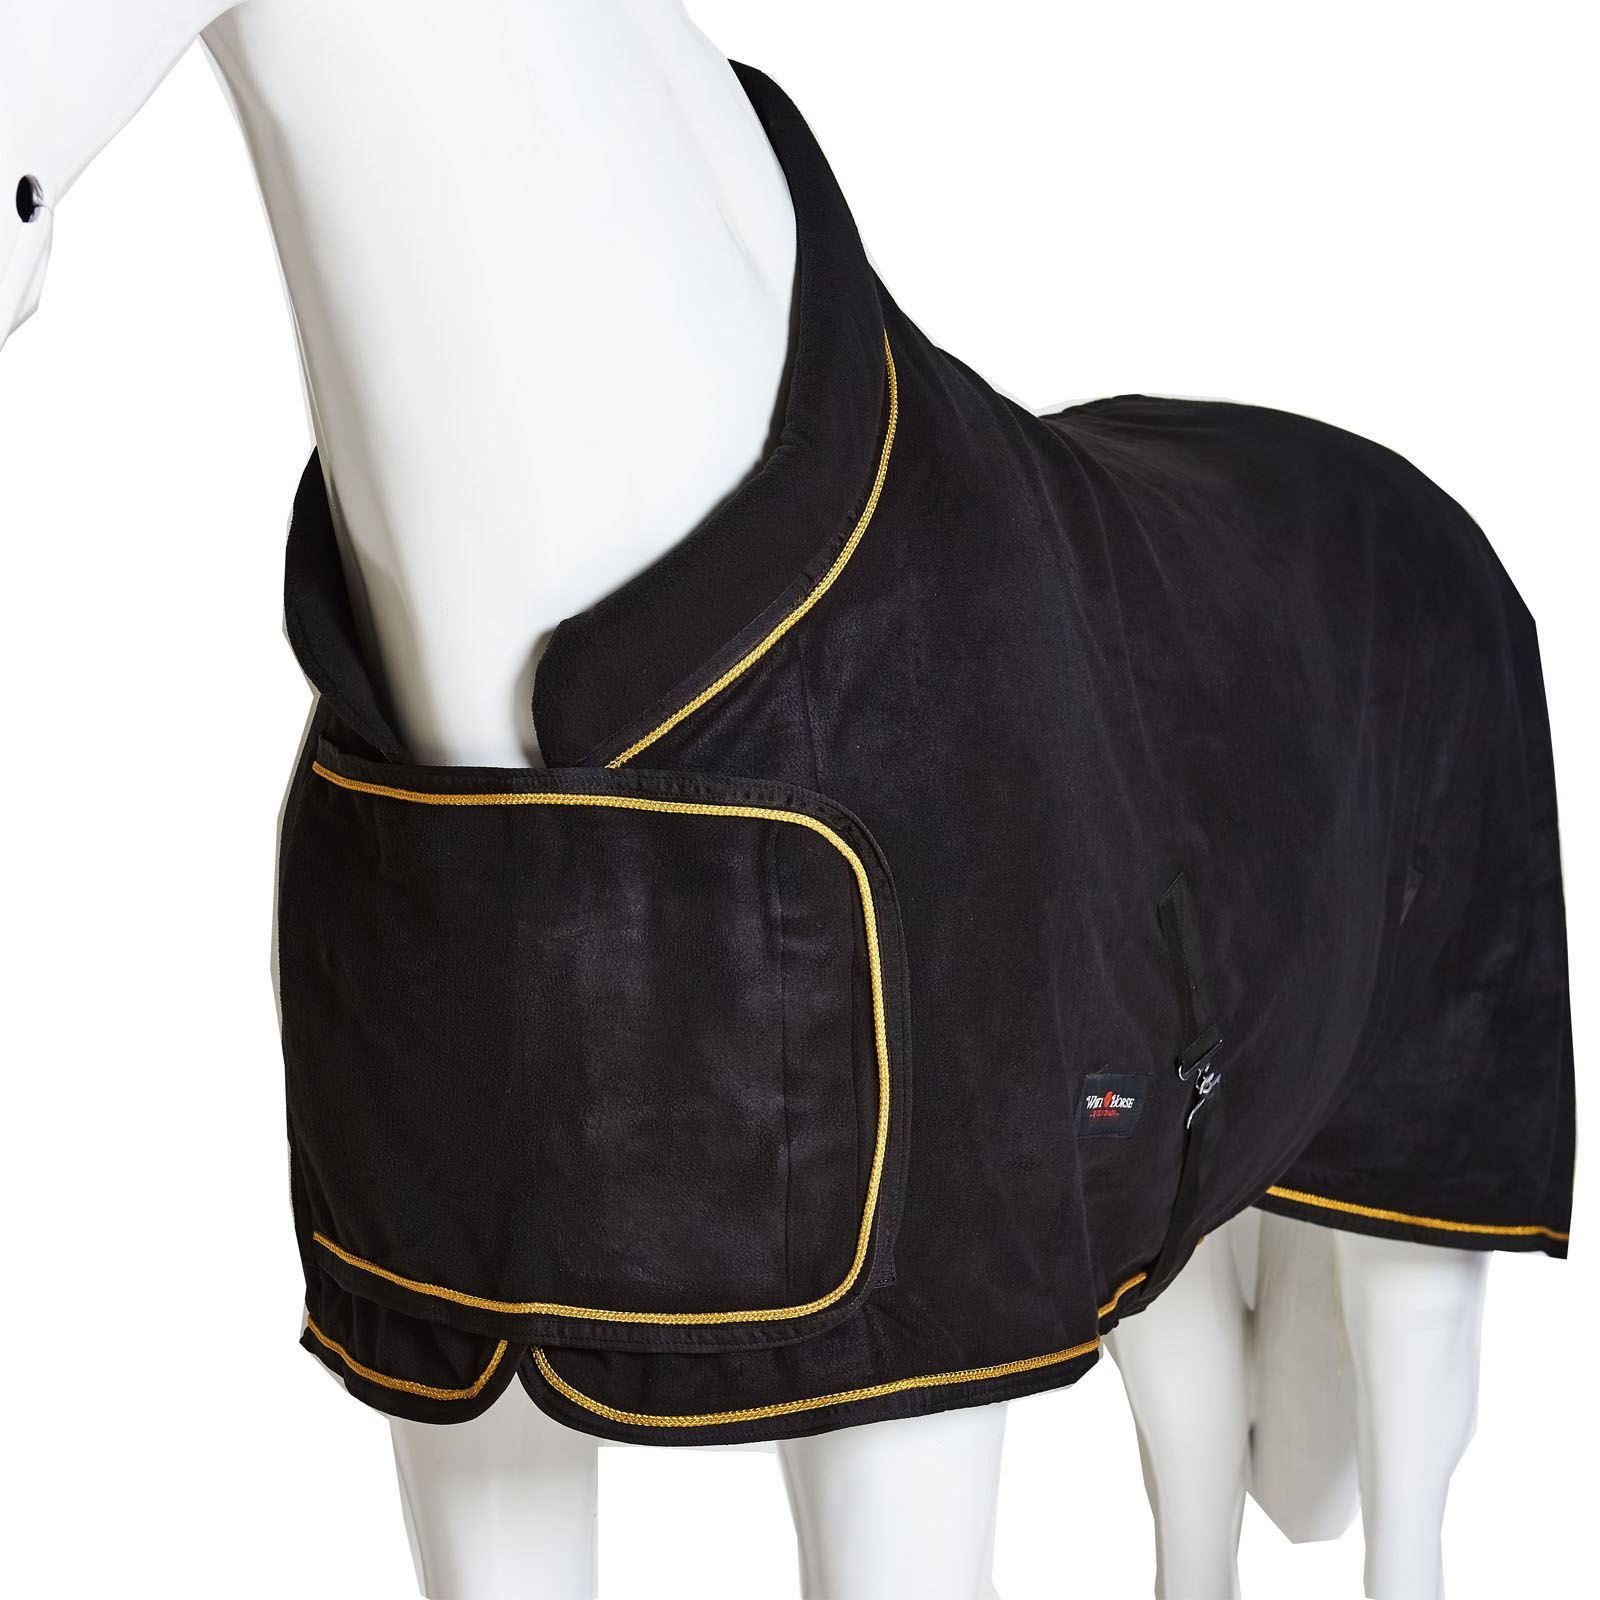 BOH Fleece Breathable Cooler Moisture Wicking Anti-Sweat Travel Show Stable Rug